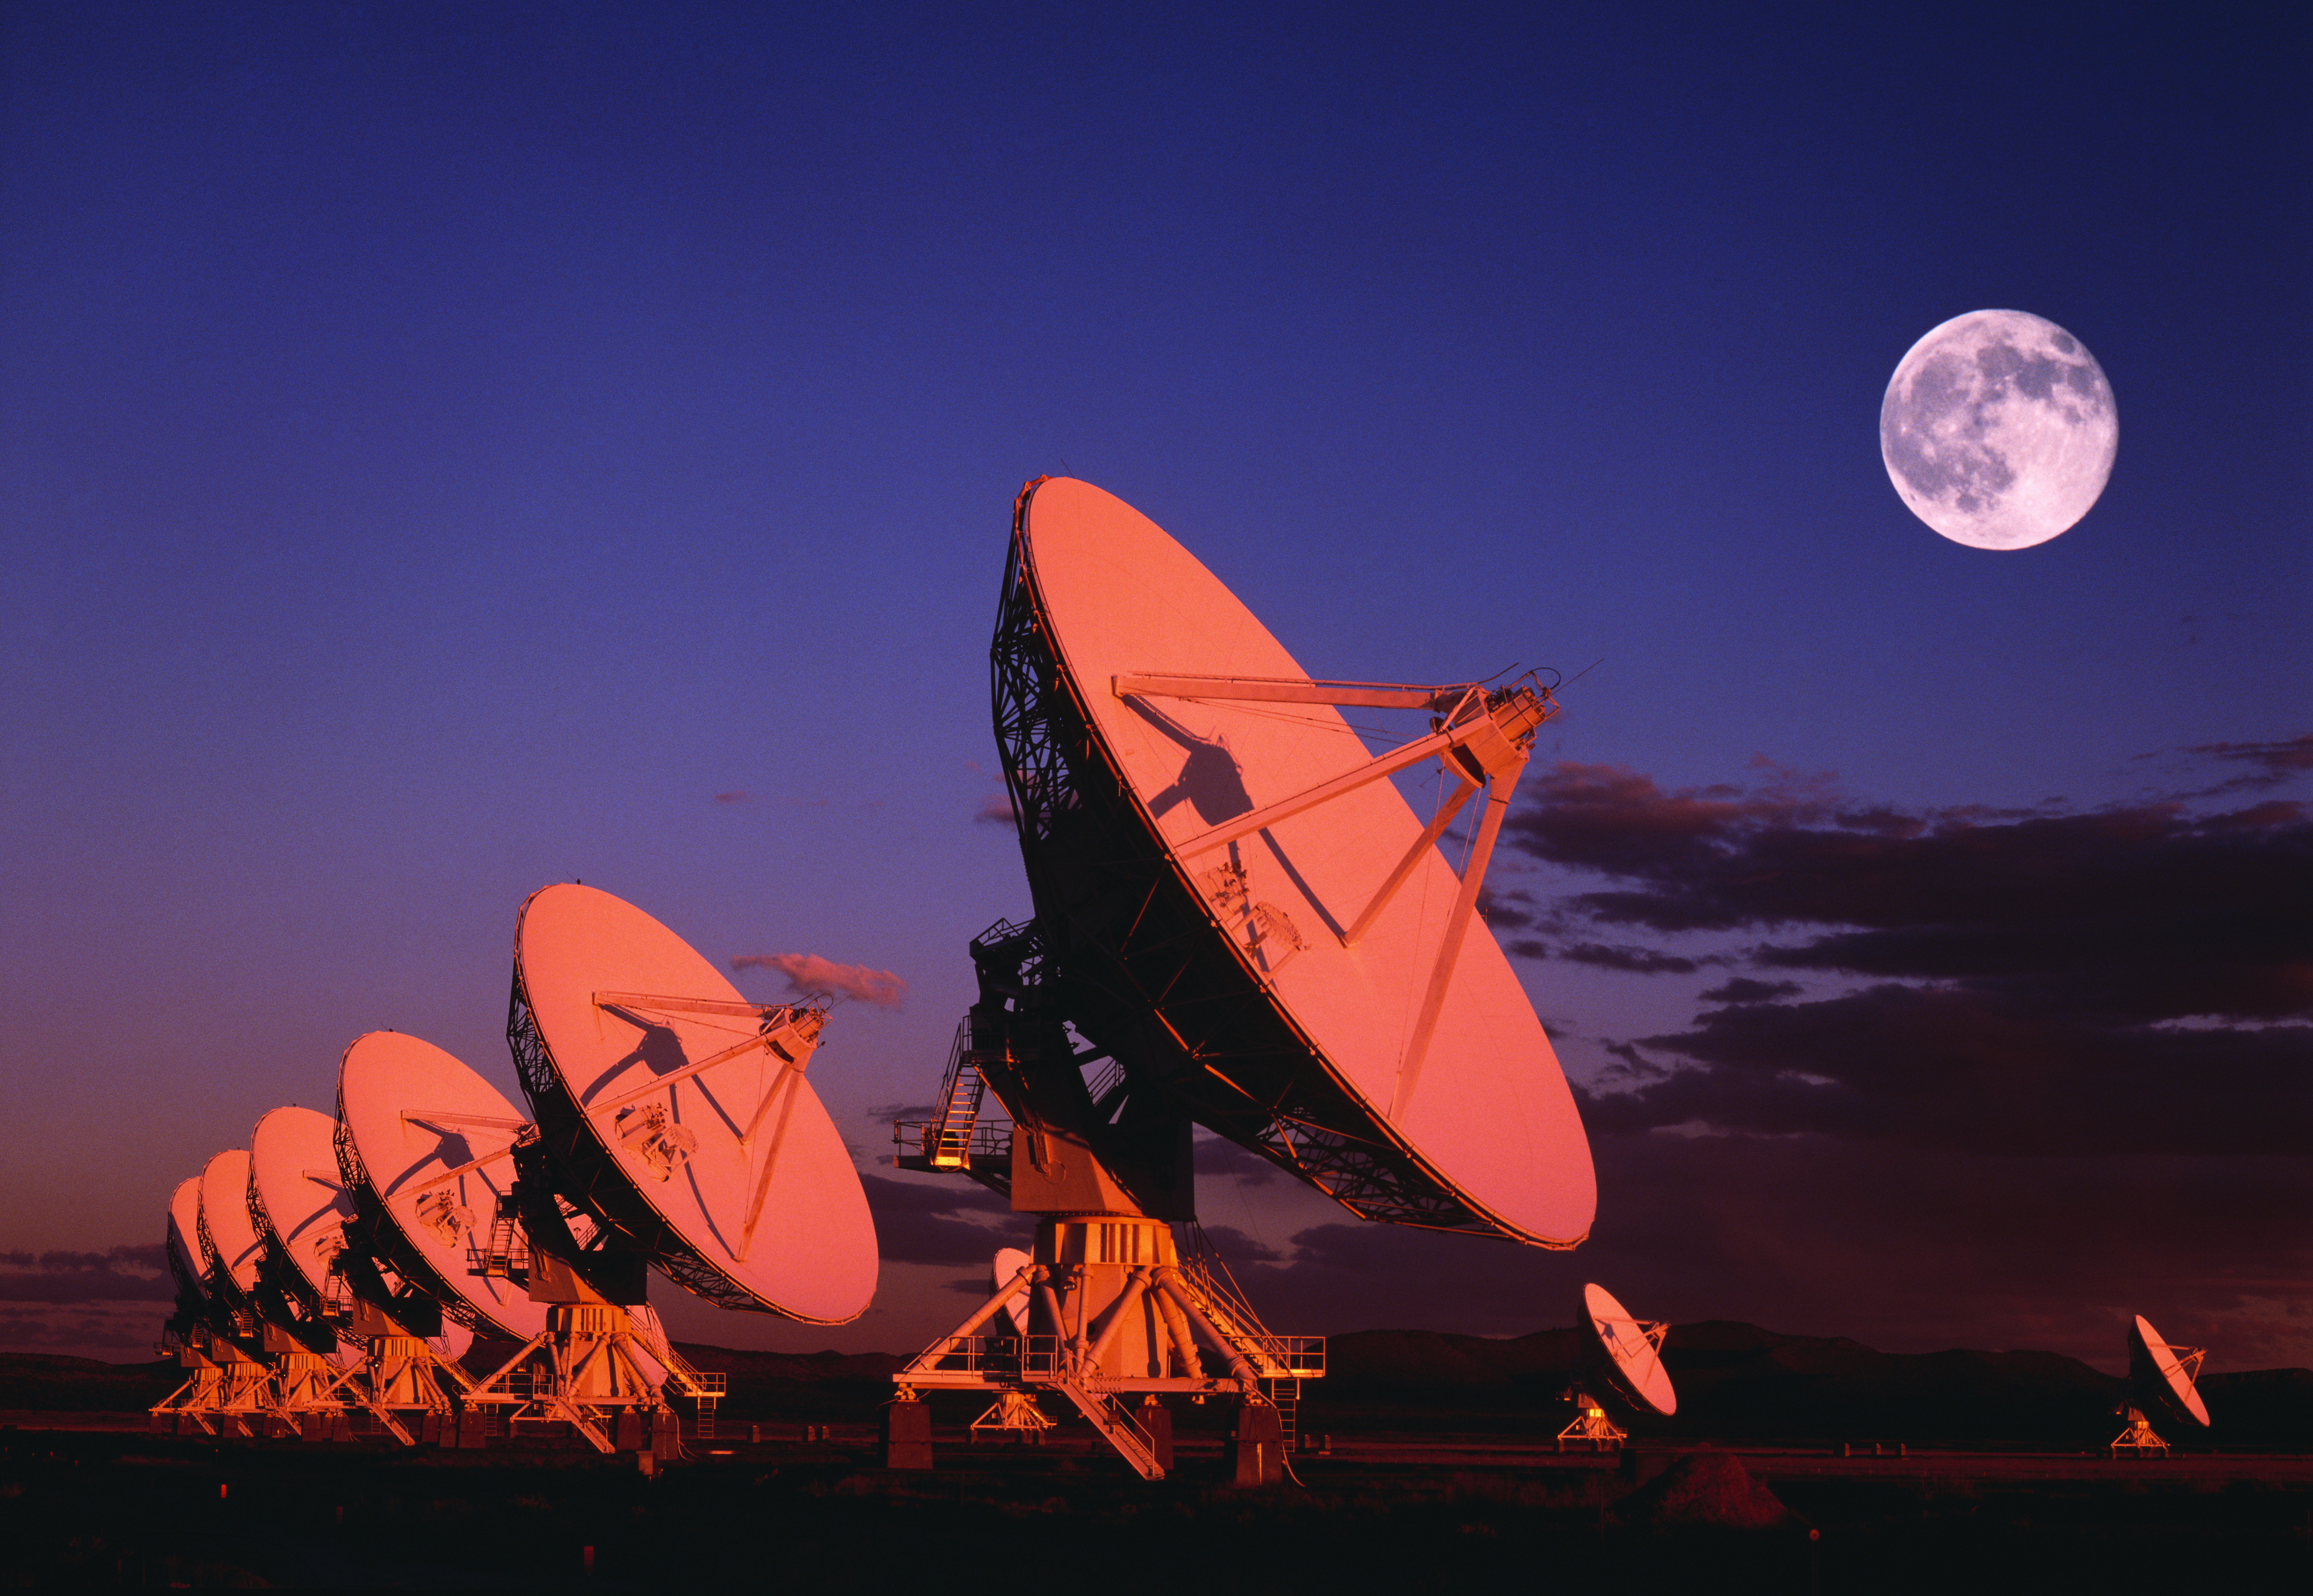 The Very Large Array radio telescope facility in New Mexico